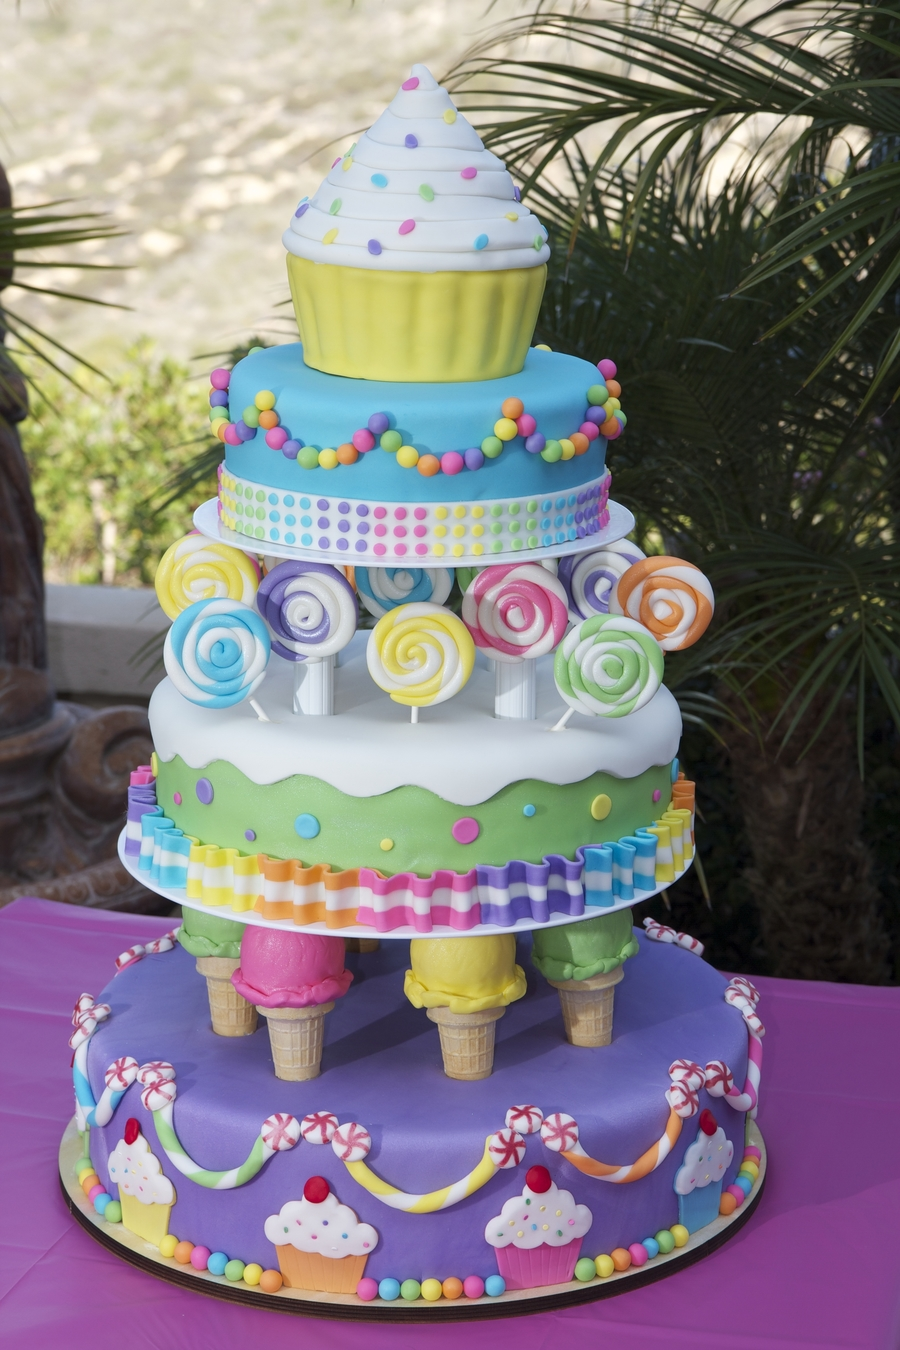 Phenomenal Candy Land Birthday Cakecentral Com Funny Birthday Cards Online Bapapcheapnameinfo